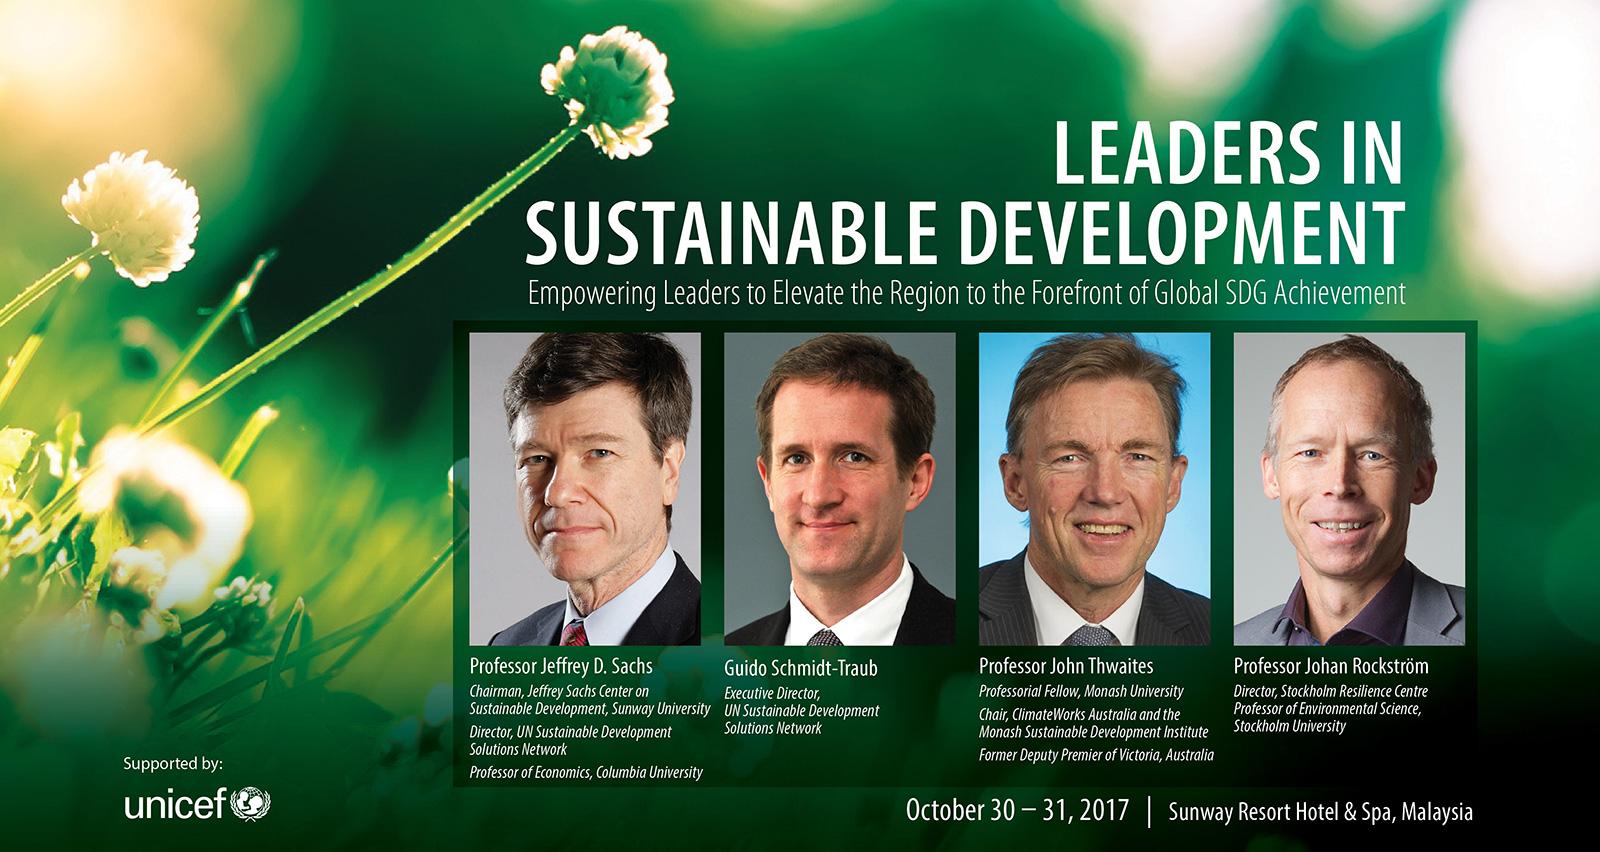 Leaders in Sustainable Development